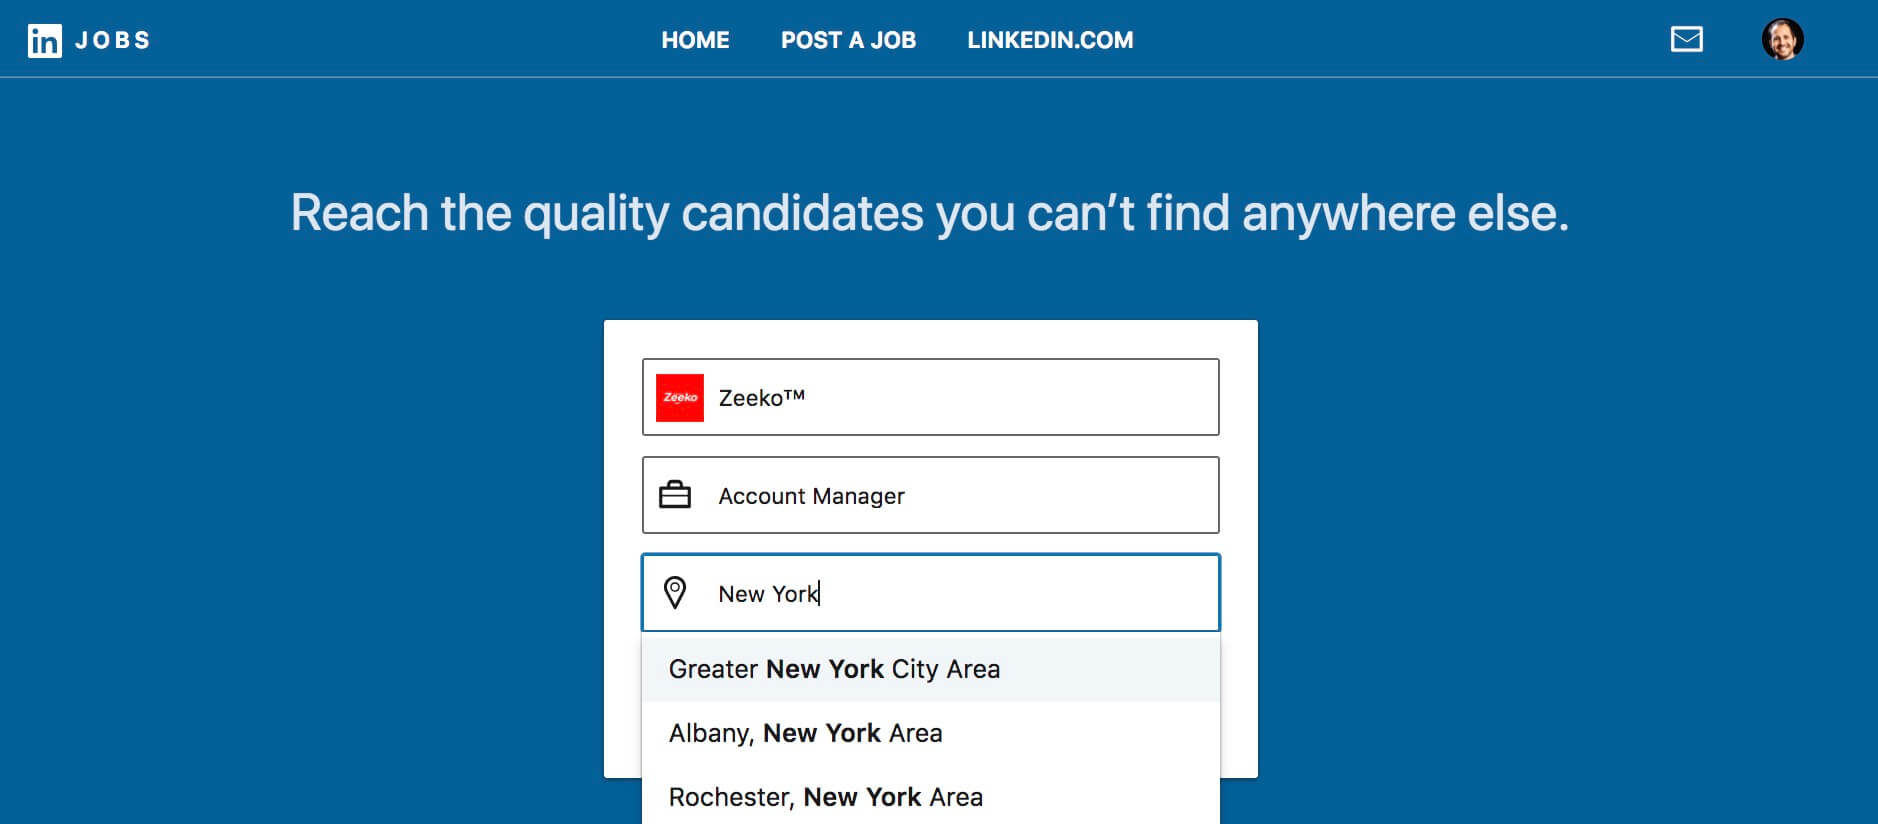 How to post a job on Linkedin - choose your city